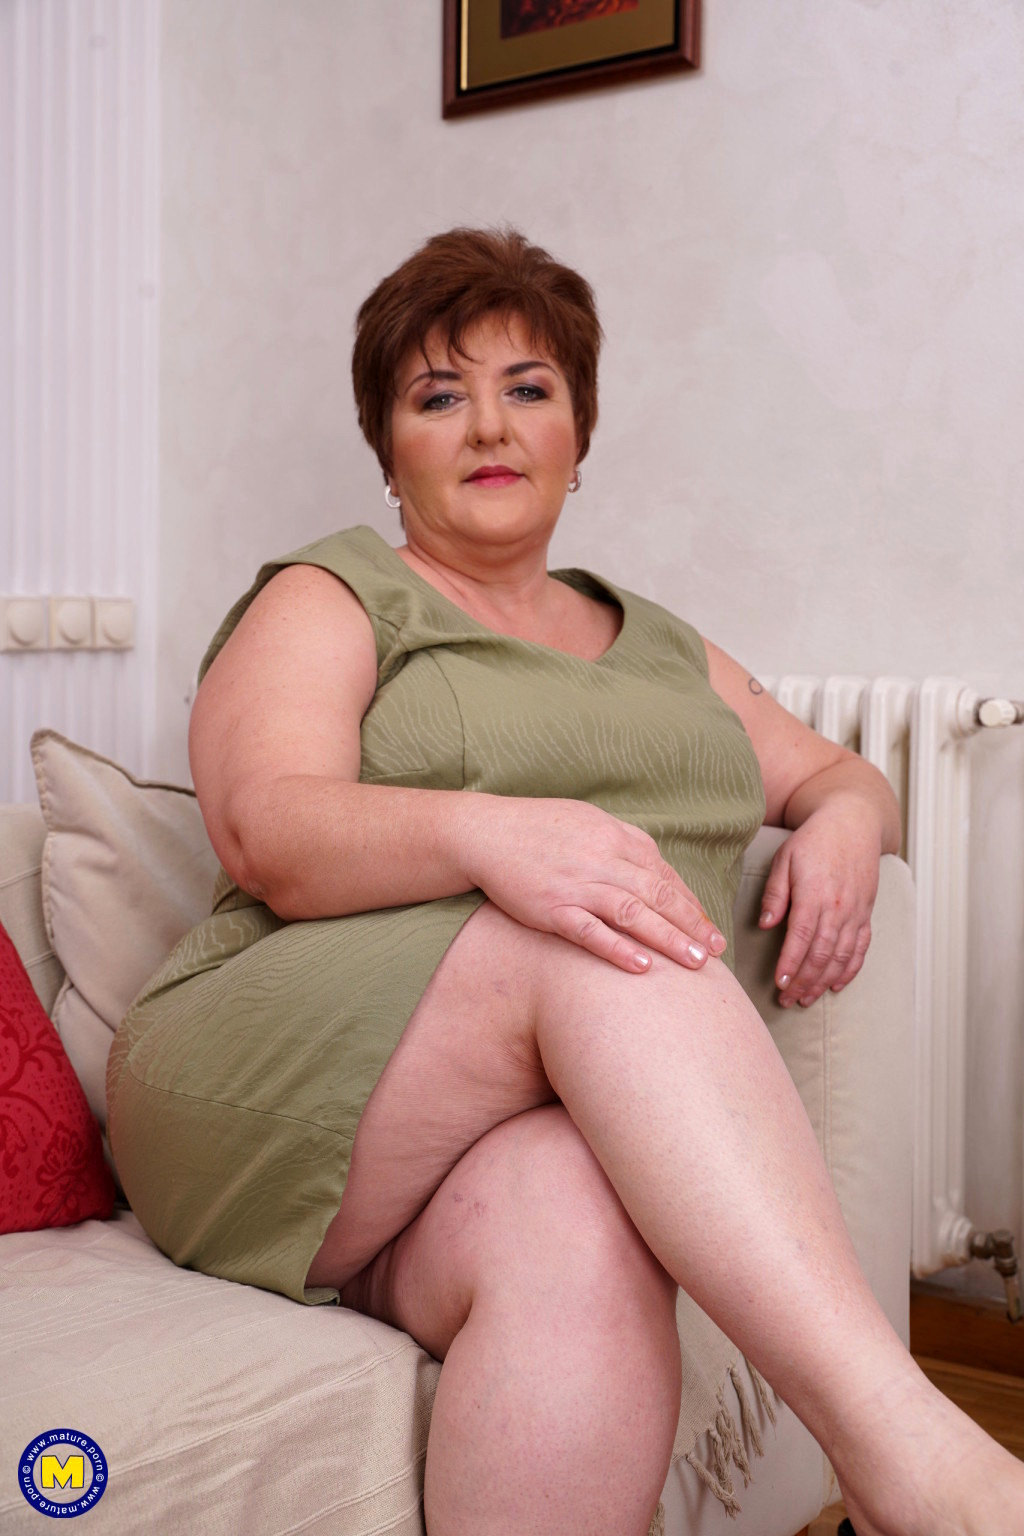 Mature Nl Maturenl Model High End Fat Ass Pornpicture Sex Hd Pics-5000